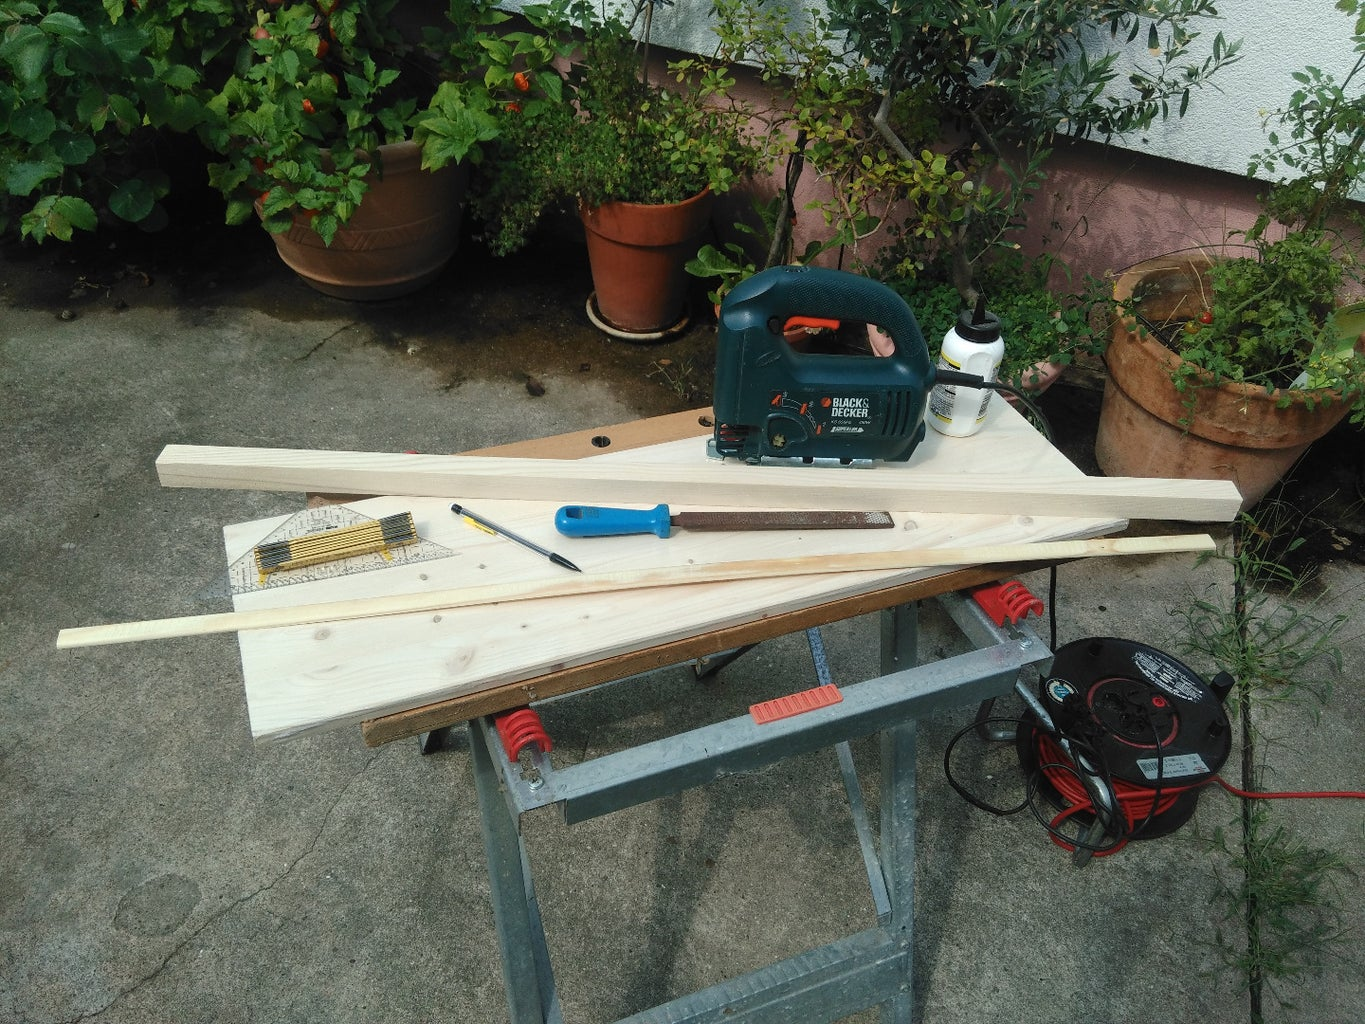 Building the Basic Platform (1/2) - Cutting the Parts